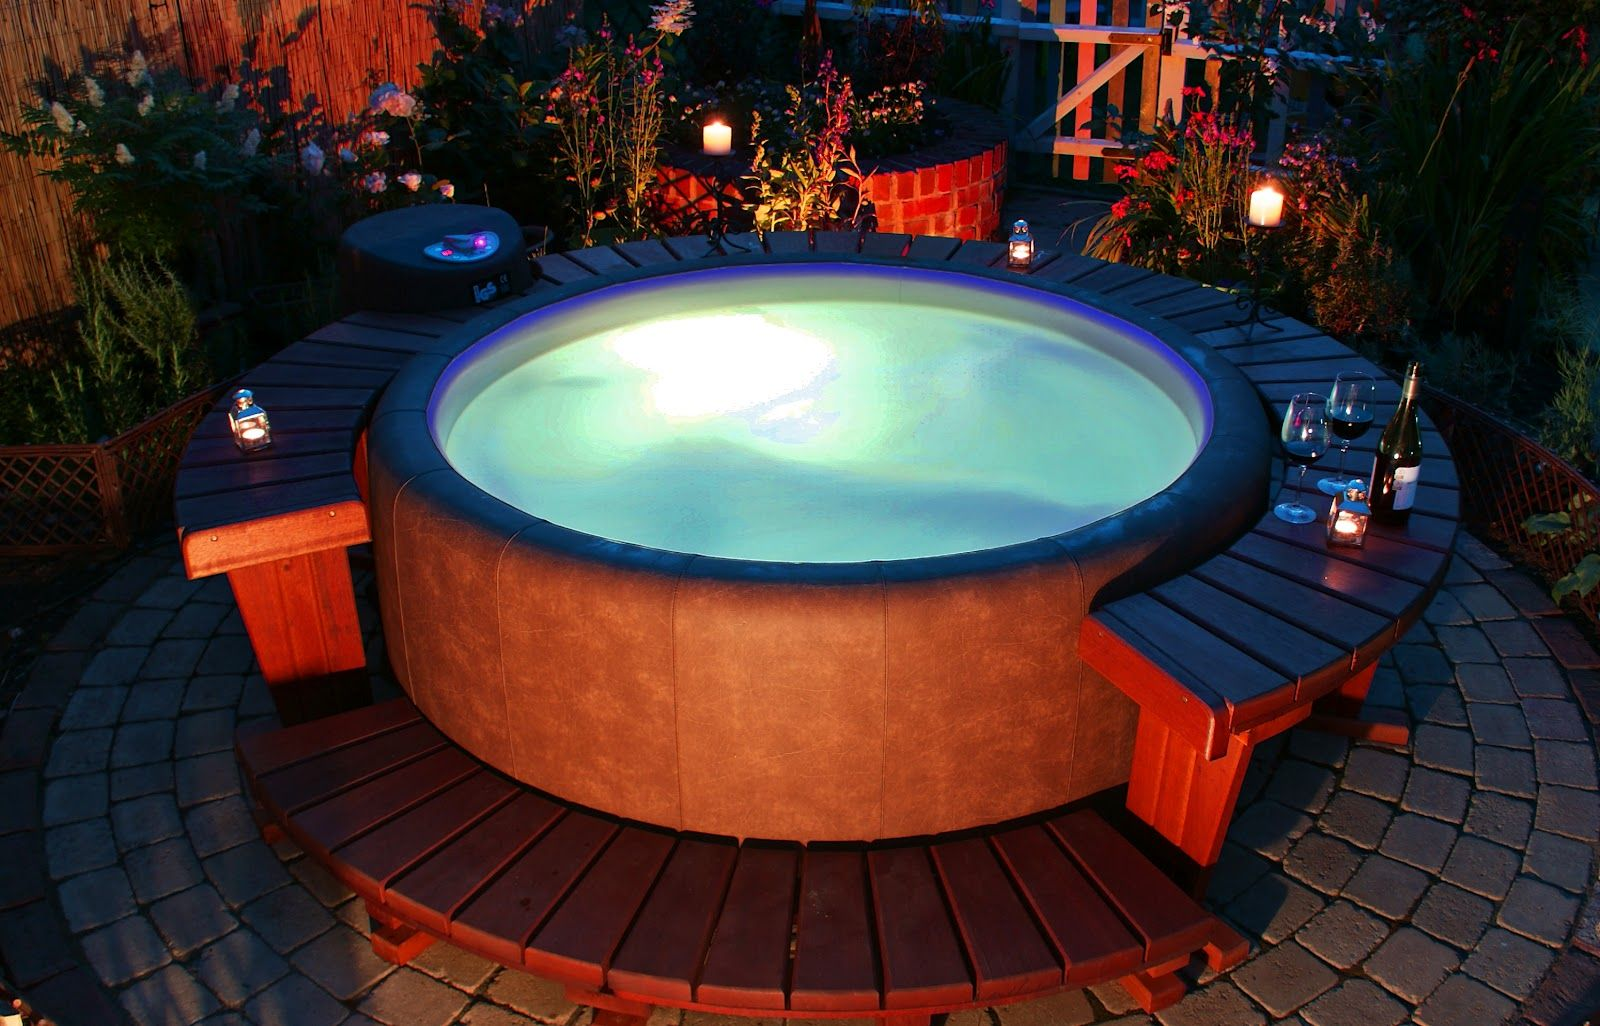 Gardners Gardens Softub Pinterest Hot Tubs And Wiring A Tub Wonderfully Designed Easy To Install The Requires Nothing More Than Level Surface Garden Hose Household Outlet For Setup